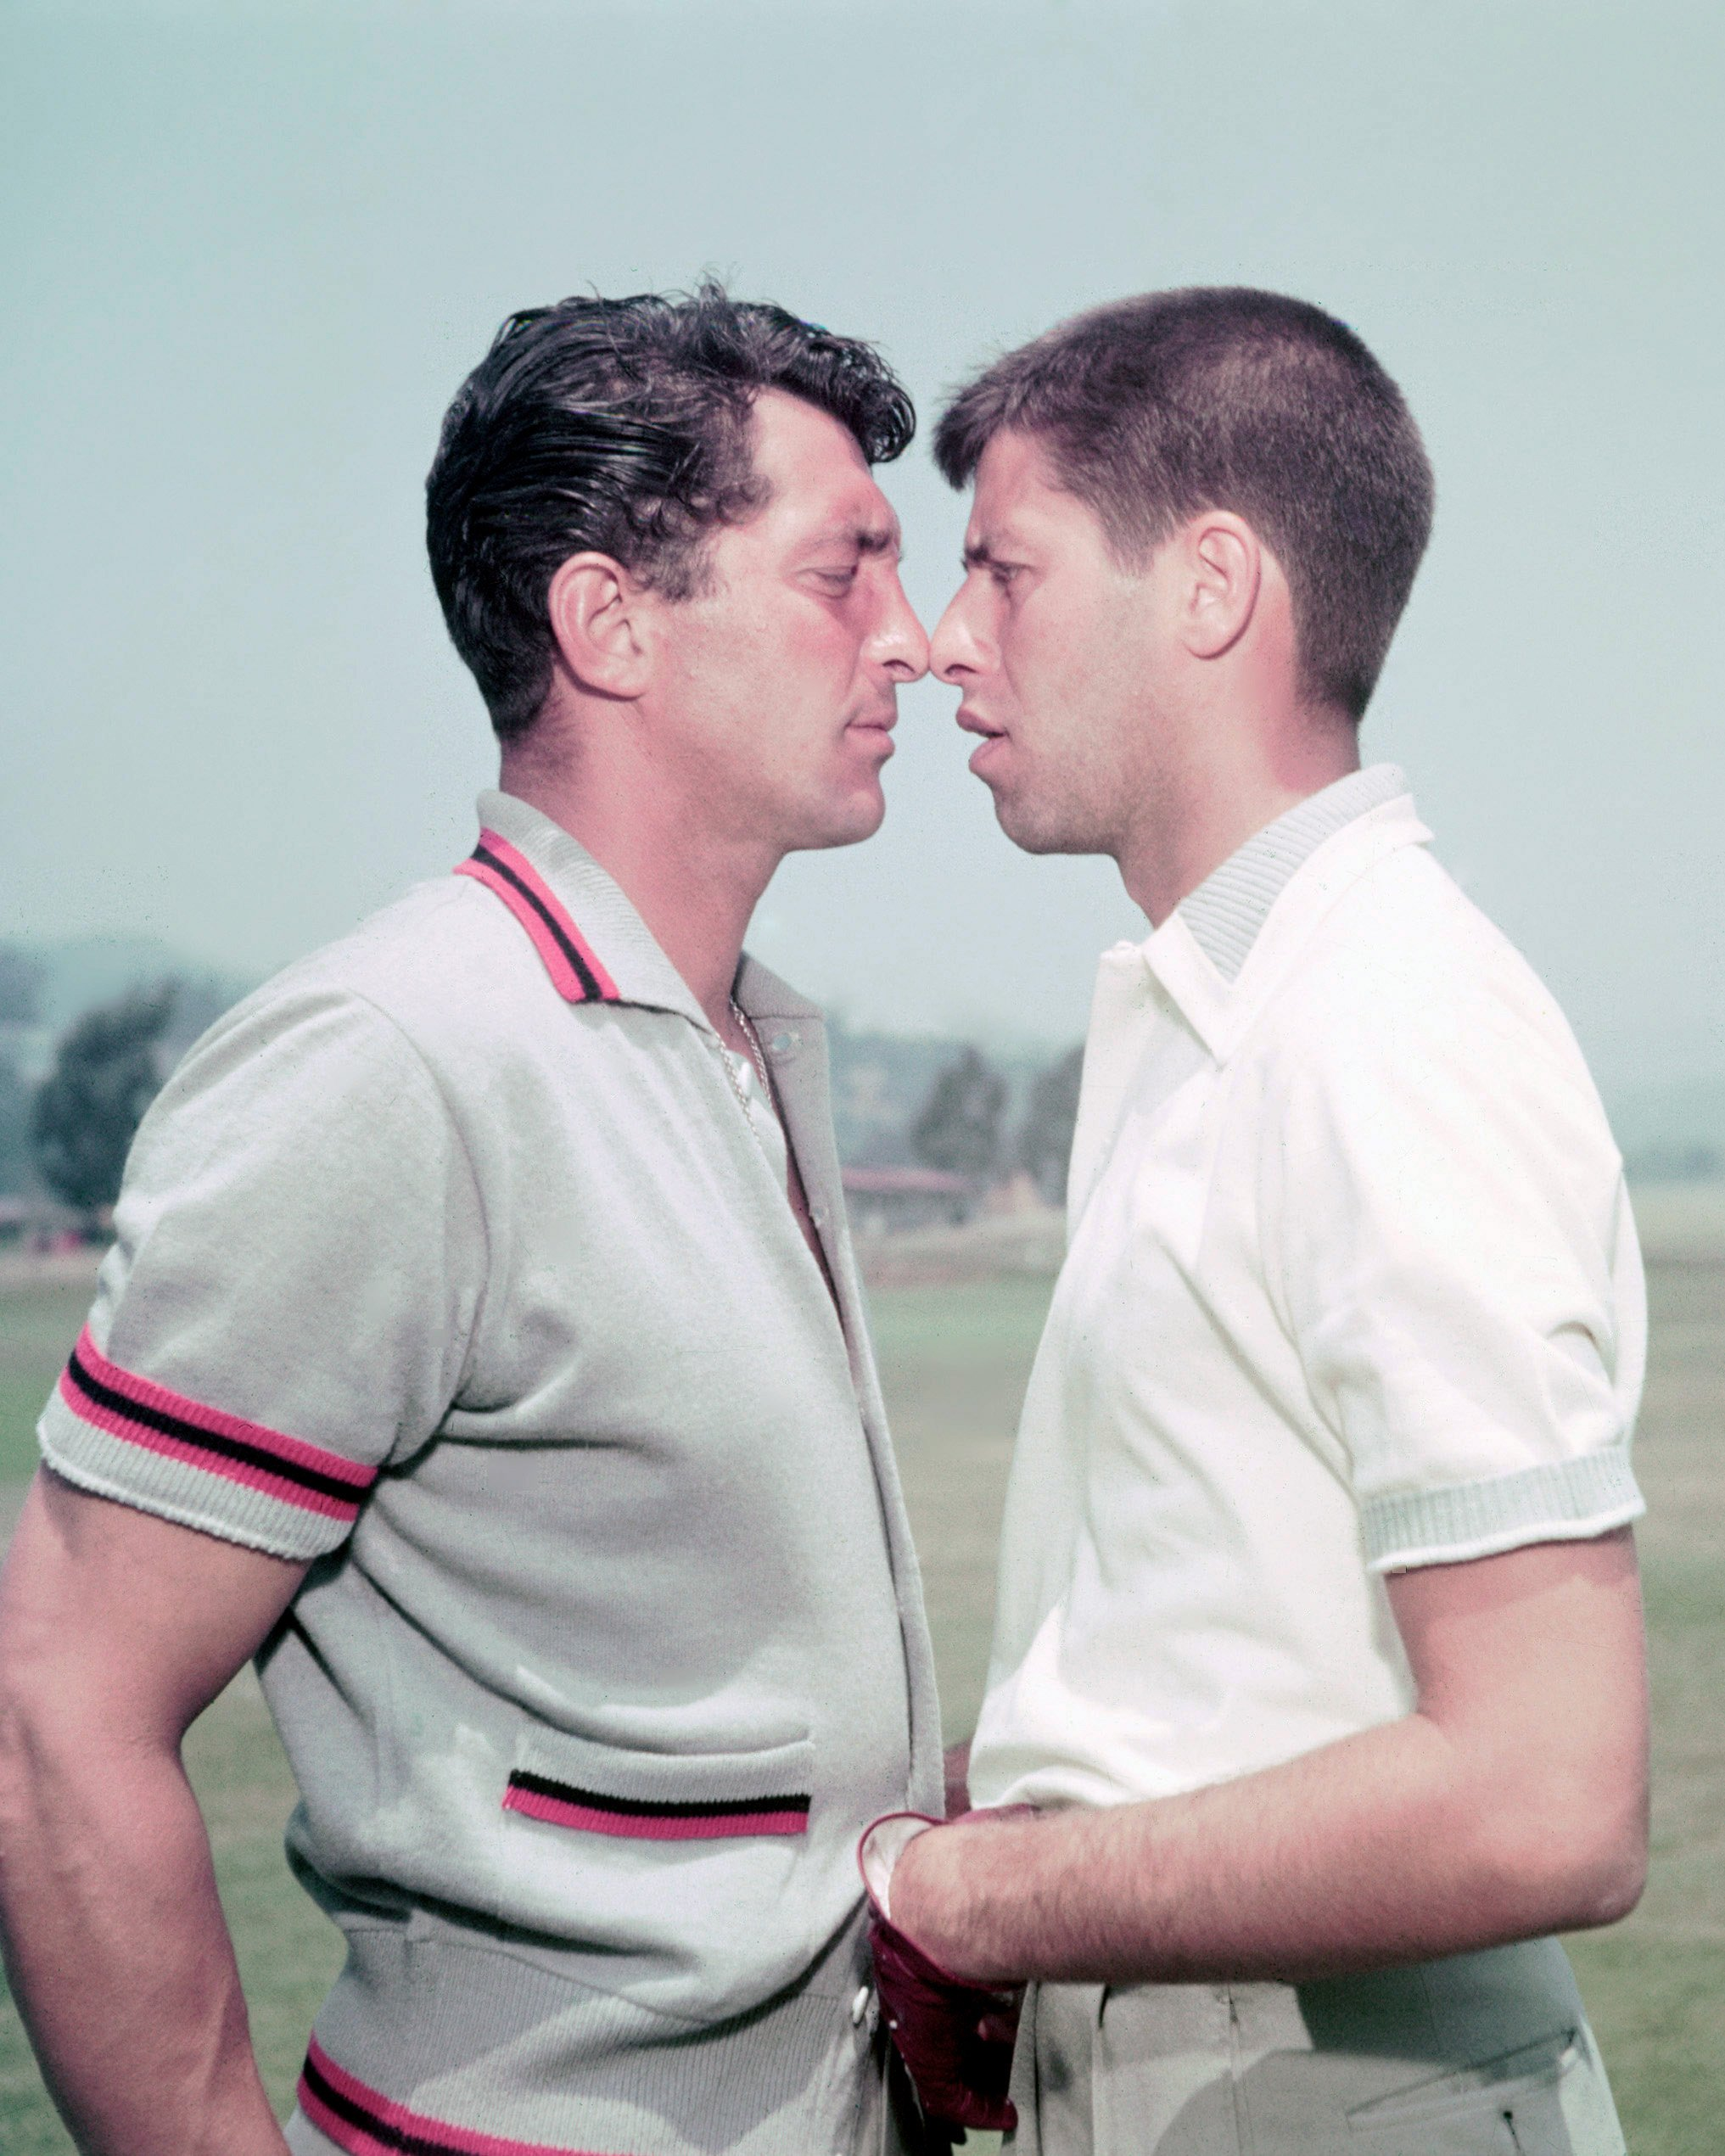 Dean Martin (1917-1995) with Jerry Lewis (1926-2017) squaring up to each other, face to face, USA, circa 1952.